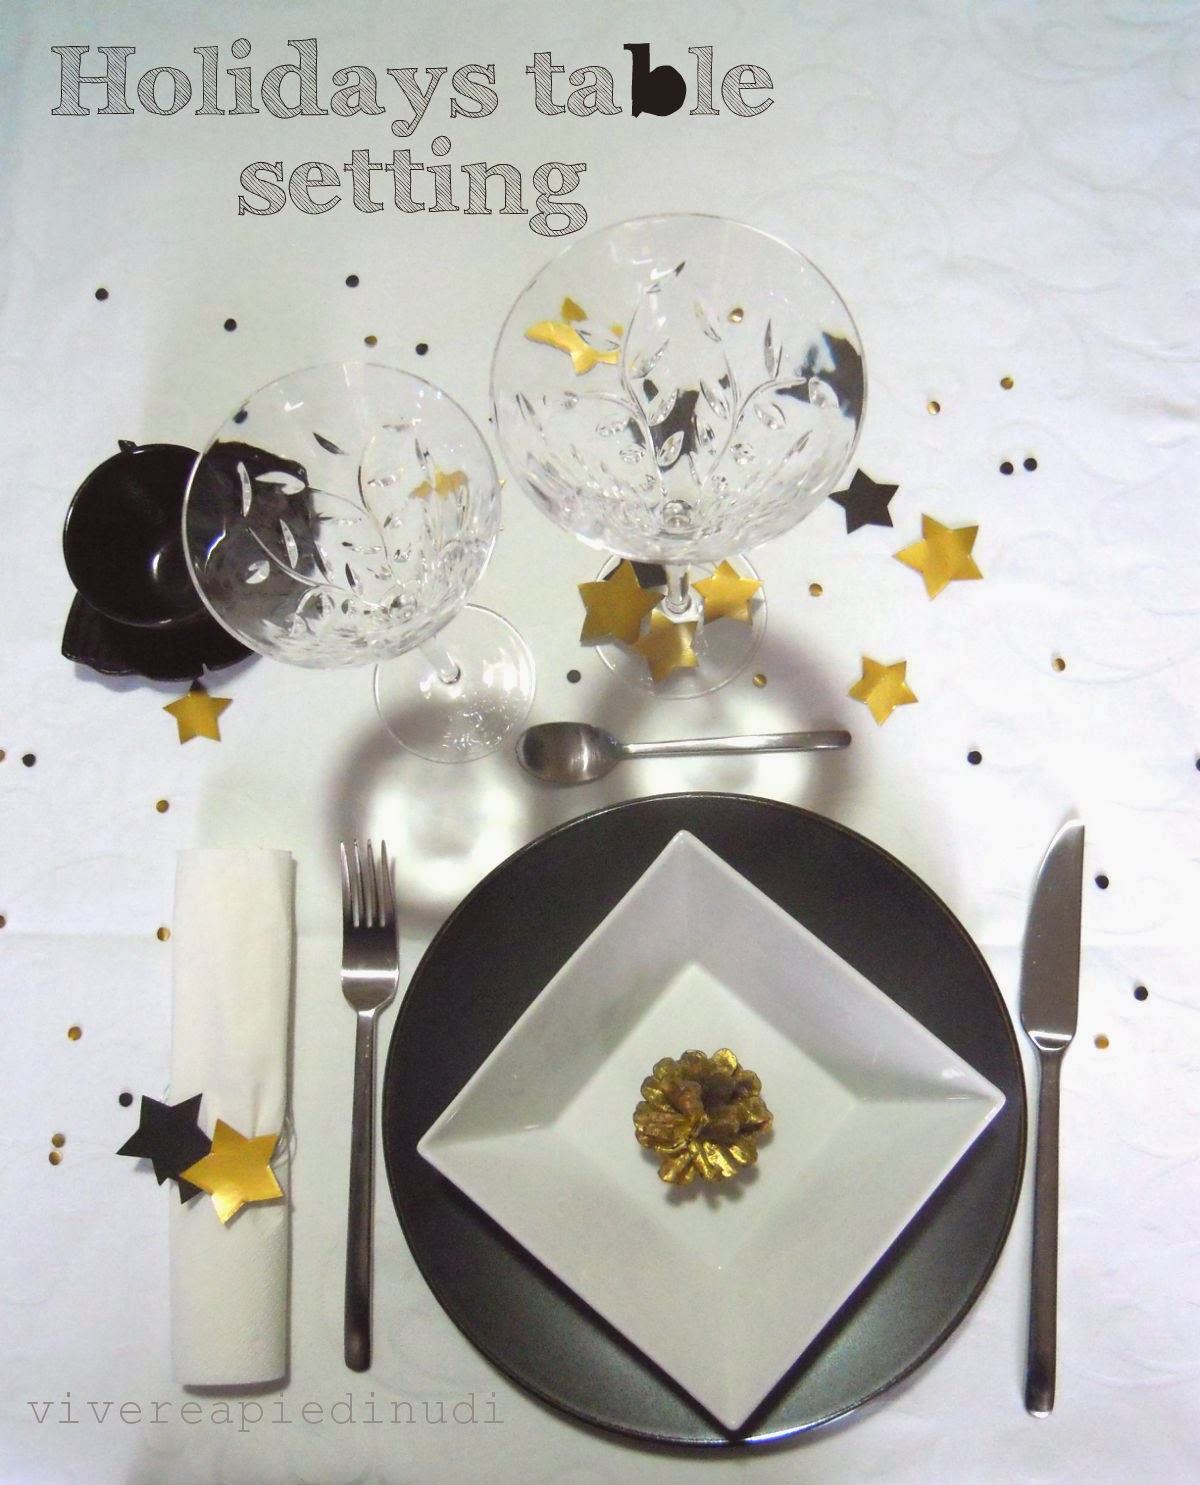 http://mammarum.com/2013/12/holidays-table-setting-semplice-diy-per.html